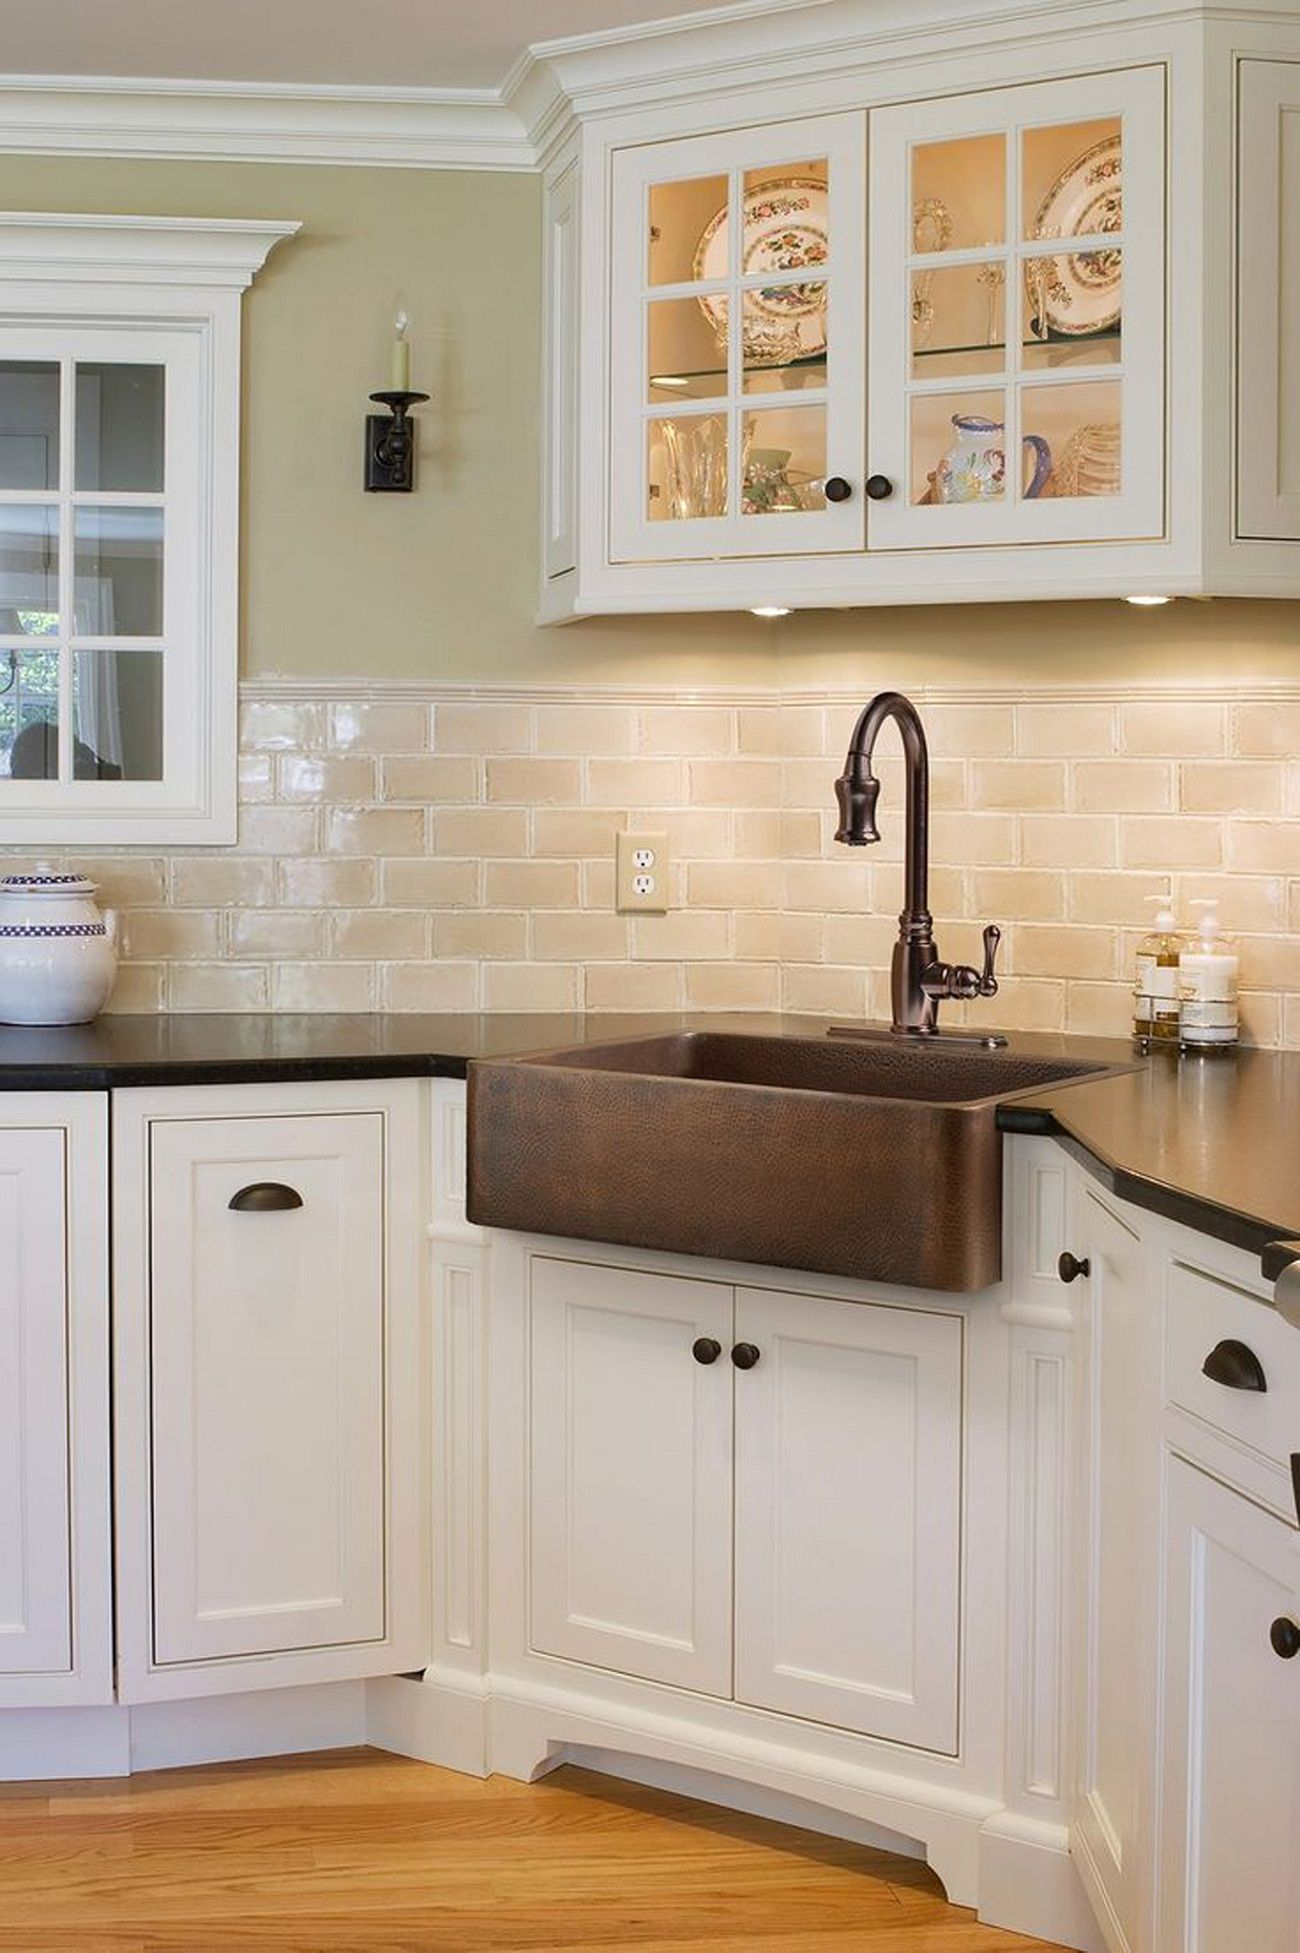 Off White Cabinets Kitchen Off White Subway Tile White Cabinets Minimalist